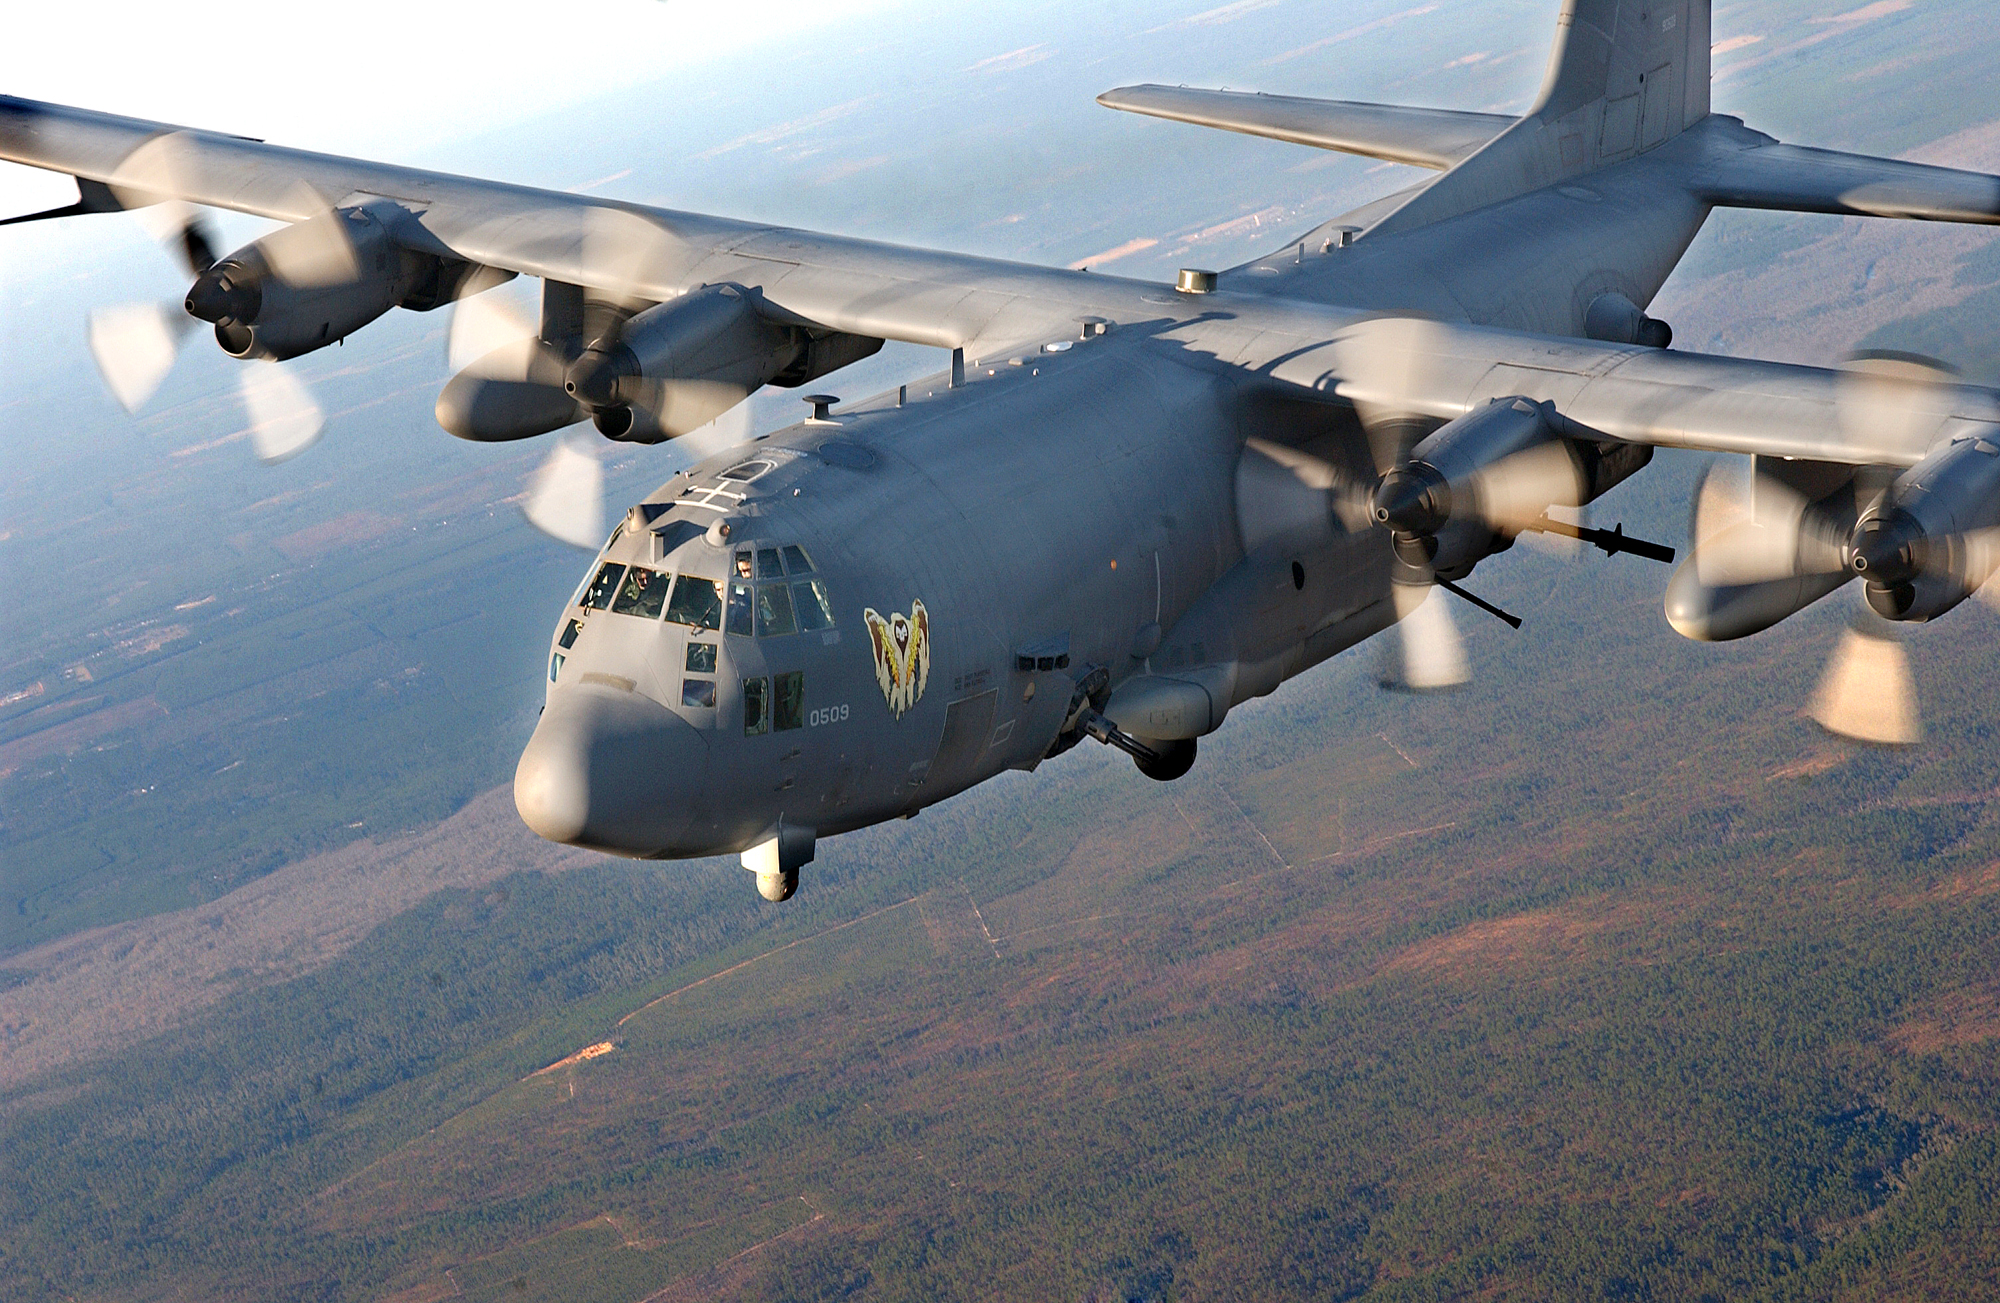 Lockheed Martin has sold India 6 Super Hercules tactical Airlifter; C-130J aircraft, with an option to sell 6 more. The C-130J is a very advanced version with four powerful Allison AE2100D3 turboprop engines; Northrop Grummans MODAR 4,000-colour weather and navigation radar, with range of 250 nautical miles & four L-3 display systems multifunction liquid crystal display glass cockpit. The cargo capacity is over 15 tons